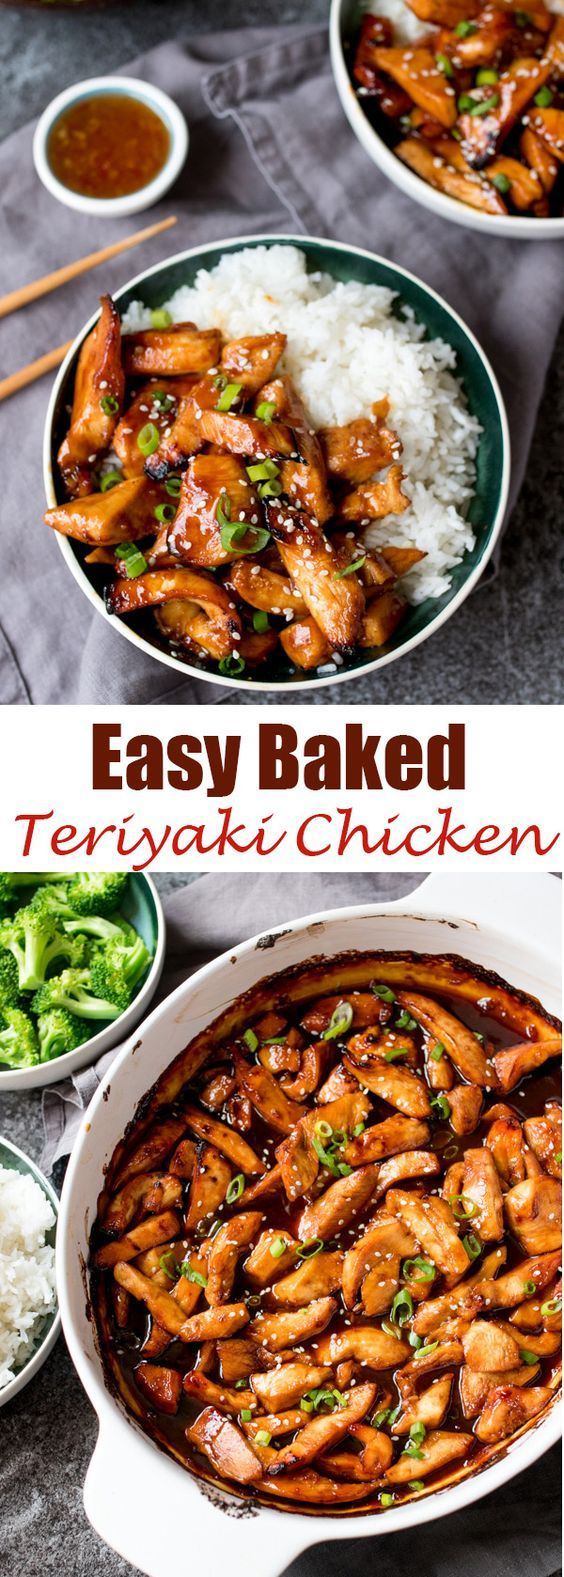 Baked teriyaki chicken - so easy and tasty!